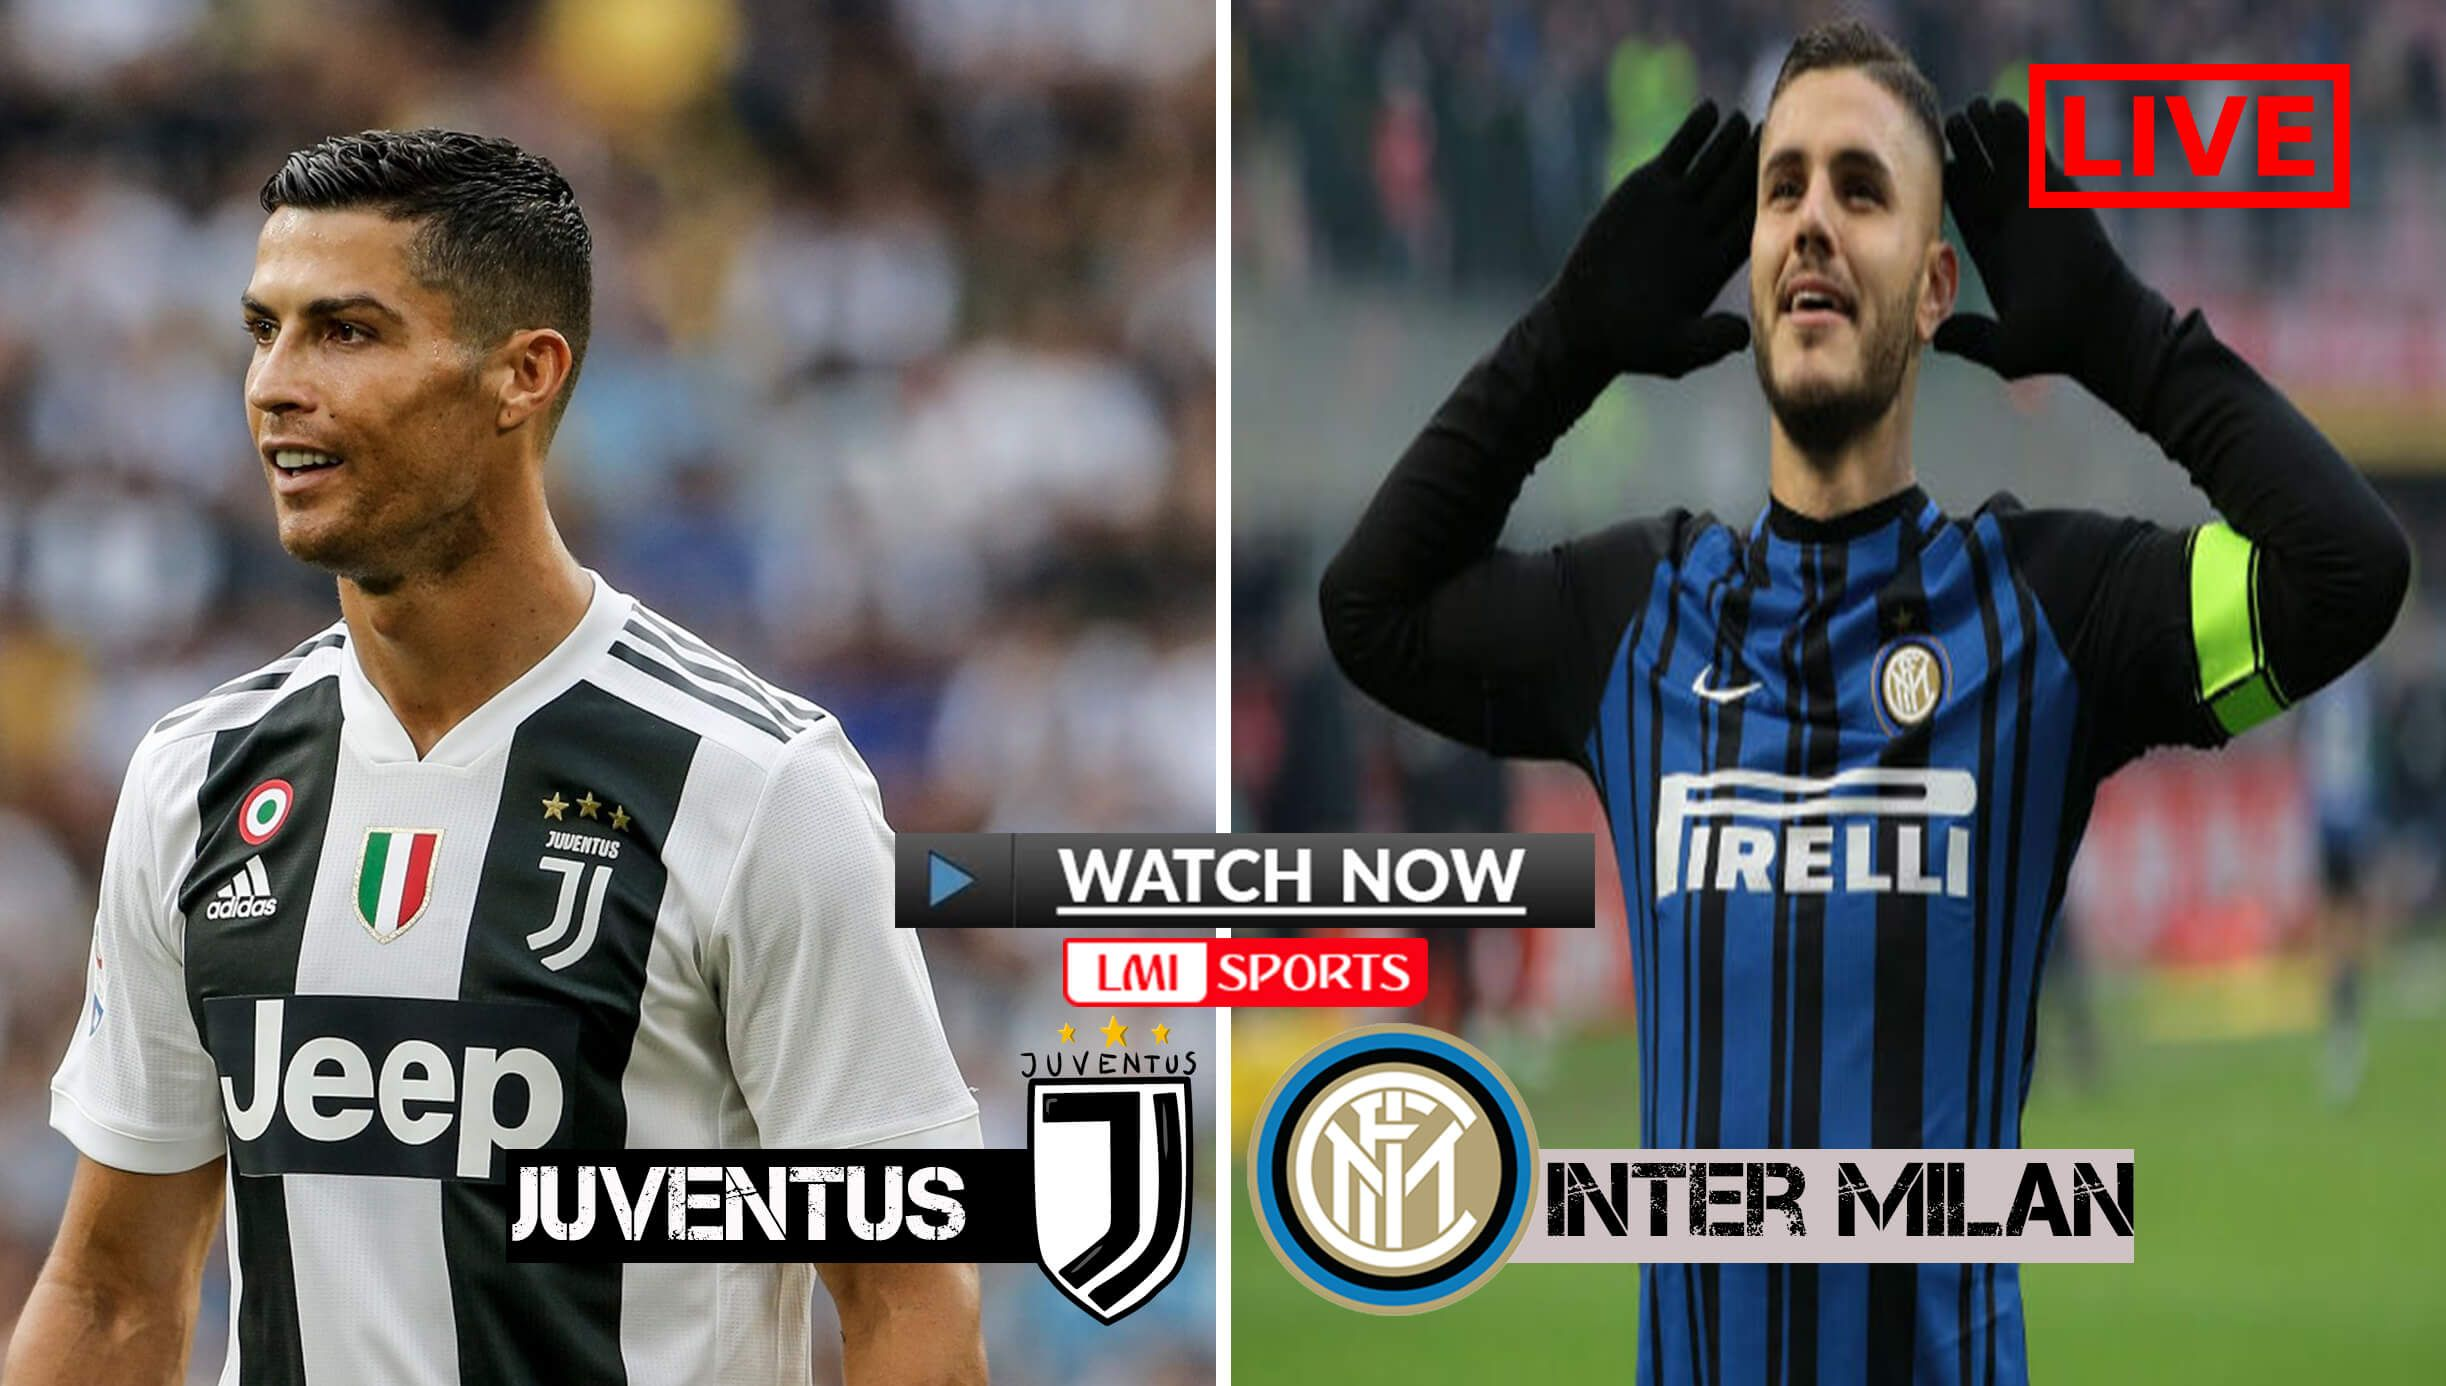 Juventus vs Inter Milan Live Stream- Reddit Soccer Streams, 23 July 2019 |  Inter milan, Juventus, Soccer